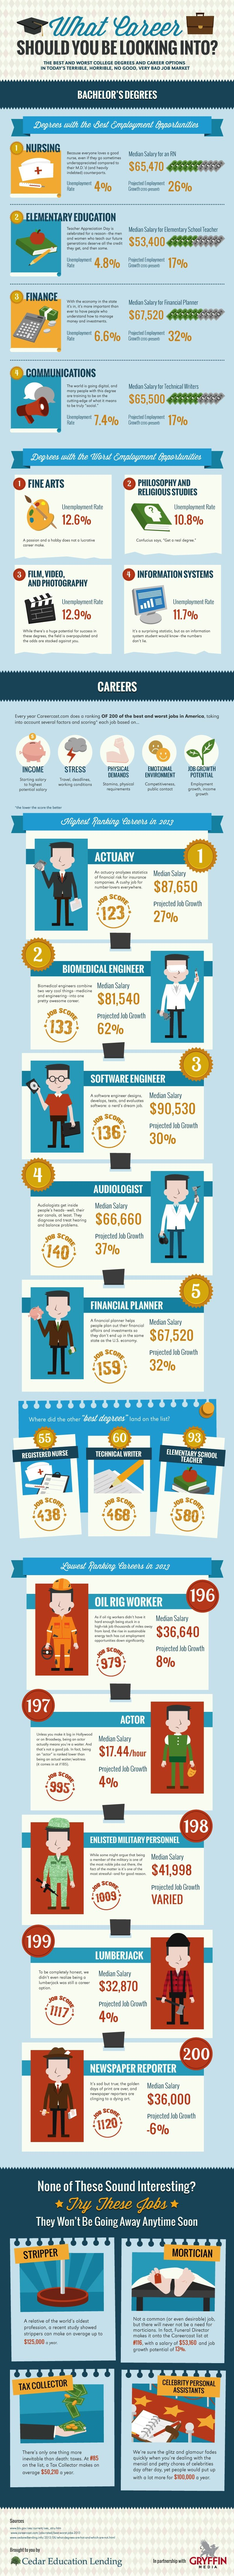 13 Disturbing Facts About Employee Engagement